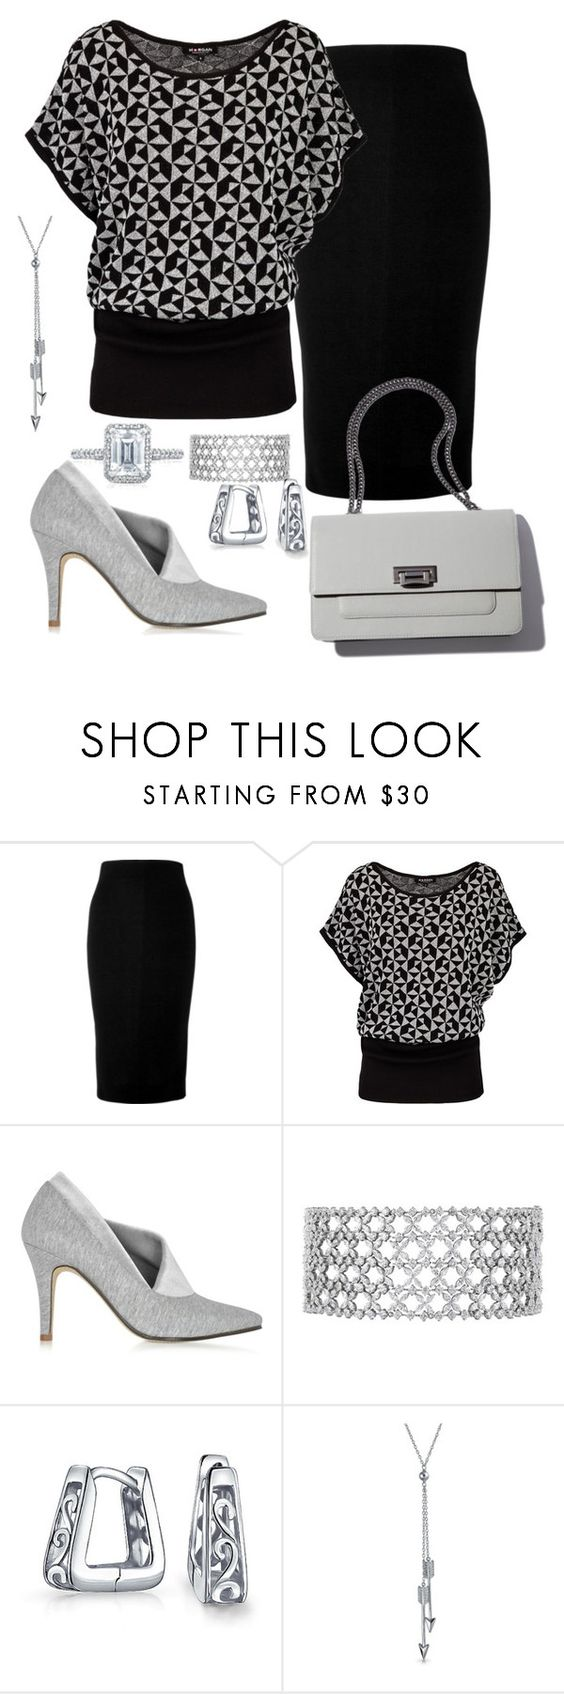 """Shades of Grey"" by sommer-reign ❤ liked on Polyvore featuring Victoria Beckham, Morgan, Zoe Lee, Bling Jewelry and Tacori"